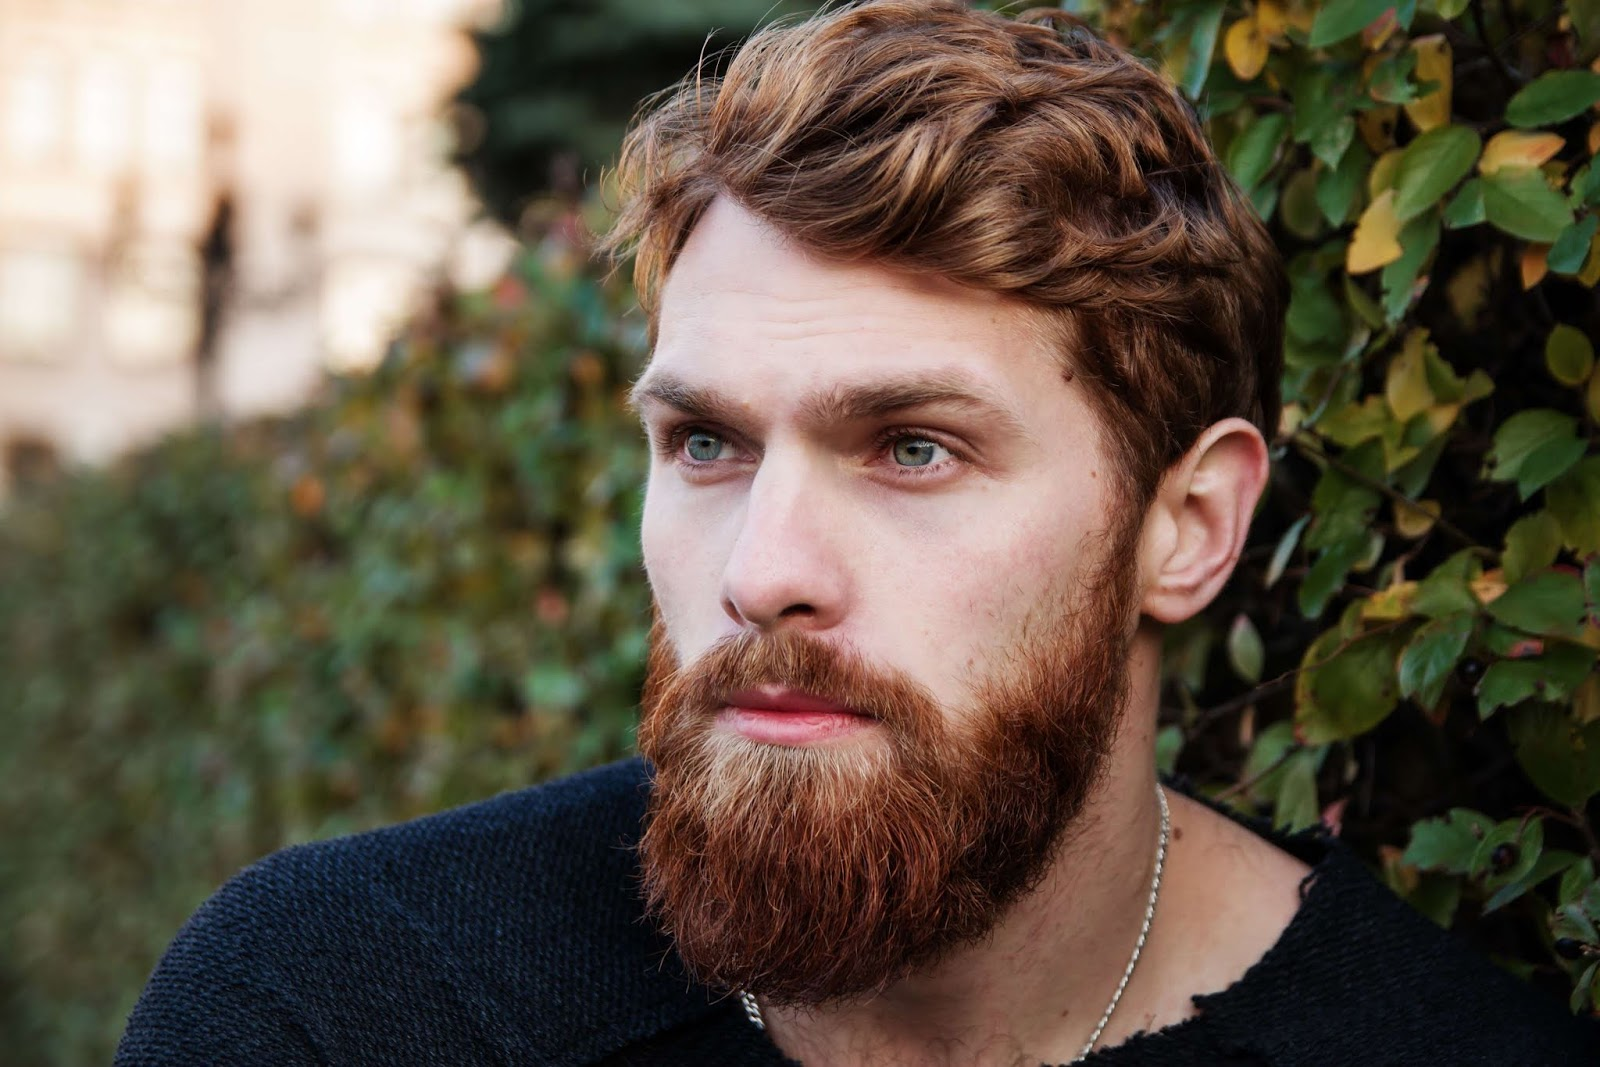 On How To Grow A Beard Faster Than Usual